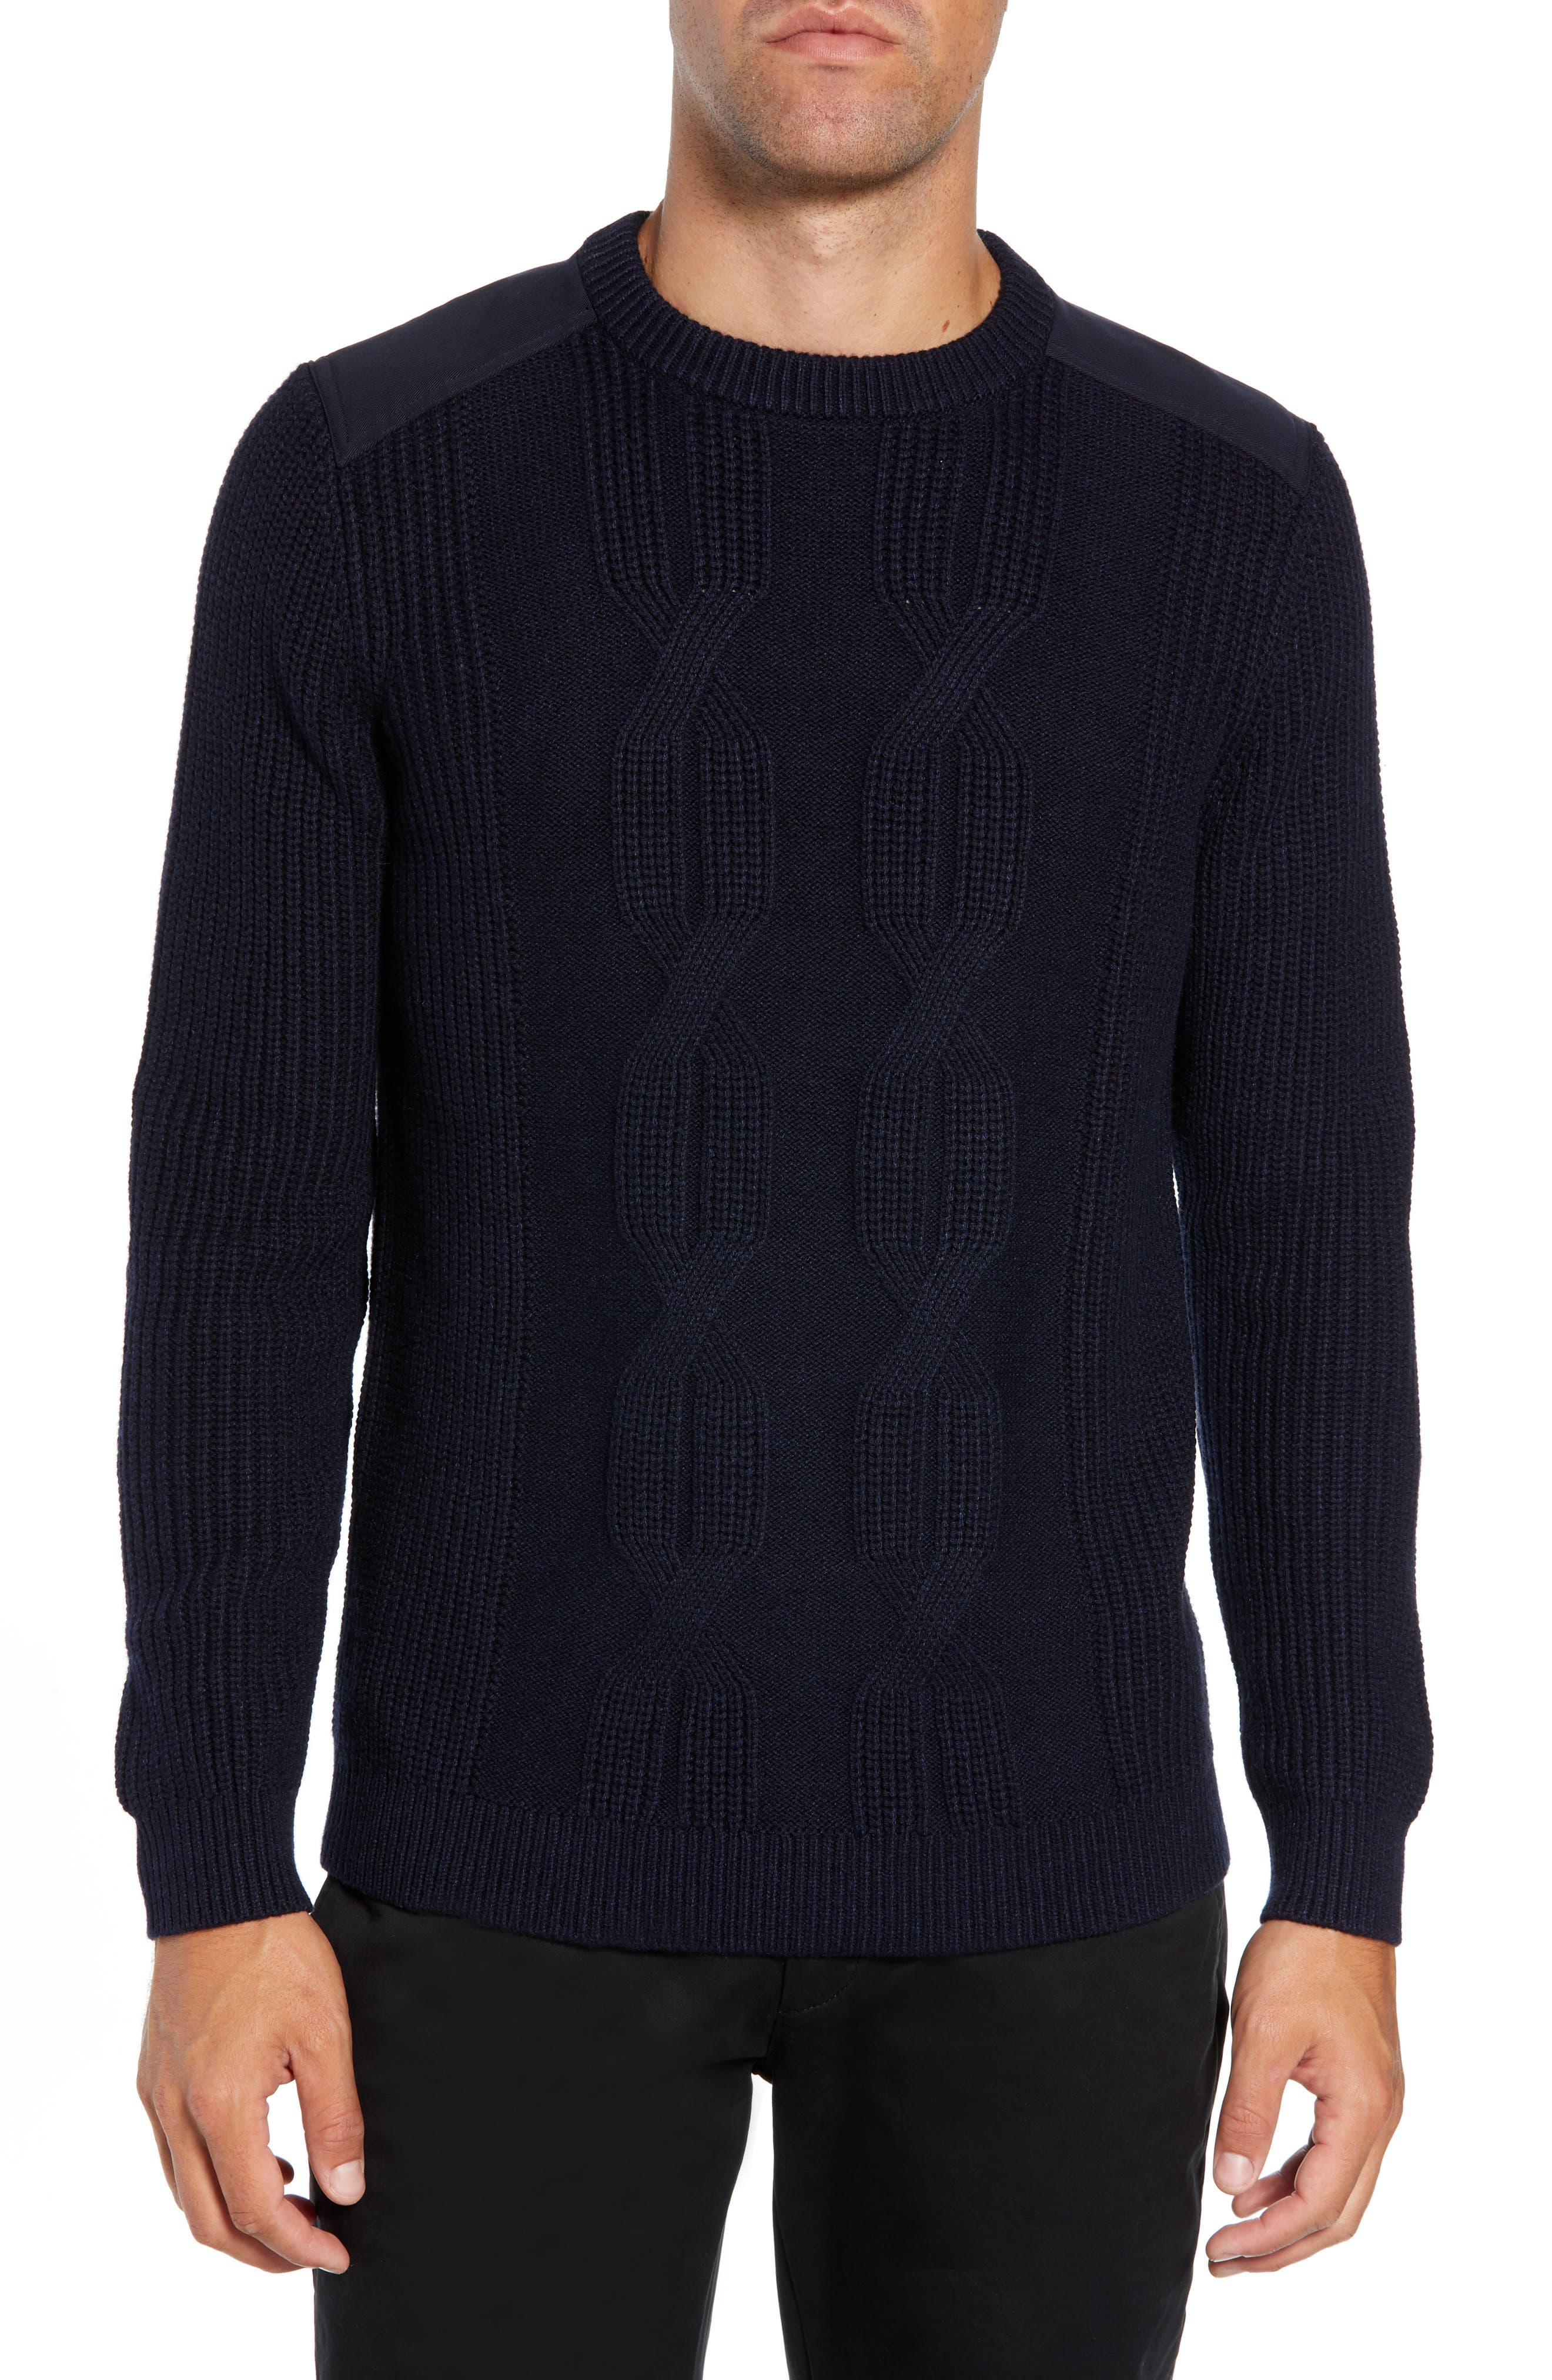 Laichi Trim Fit Cable Crewneck Sweater,                         Main,                         color, NAVY